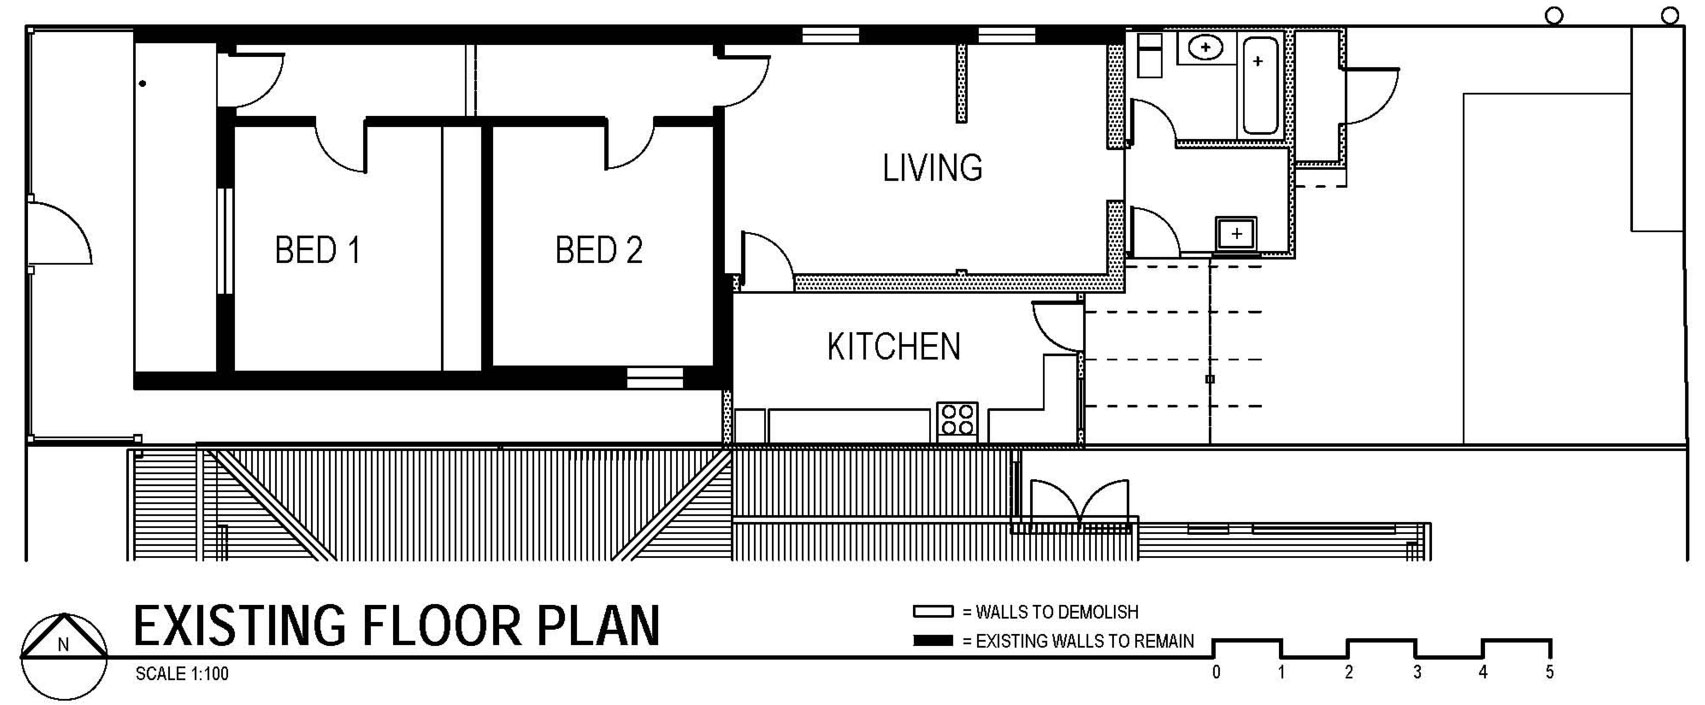 Existing Floor Plan, Modern Renovation in Fitzroy North, Australia